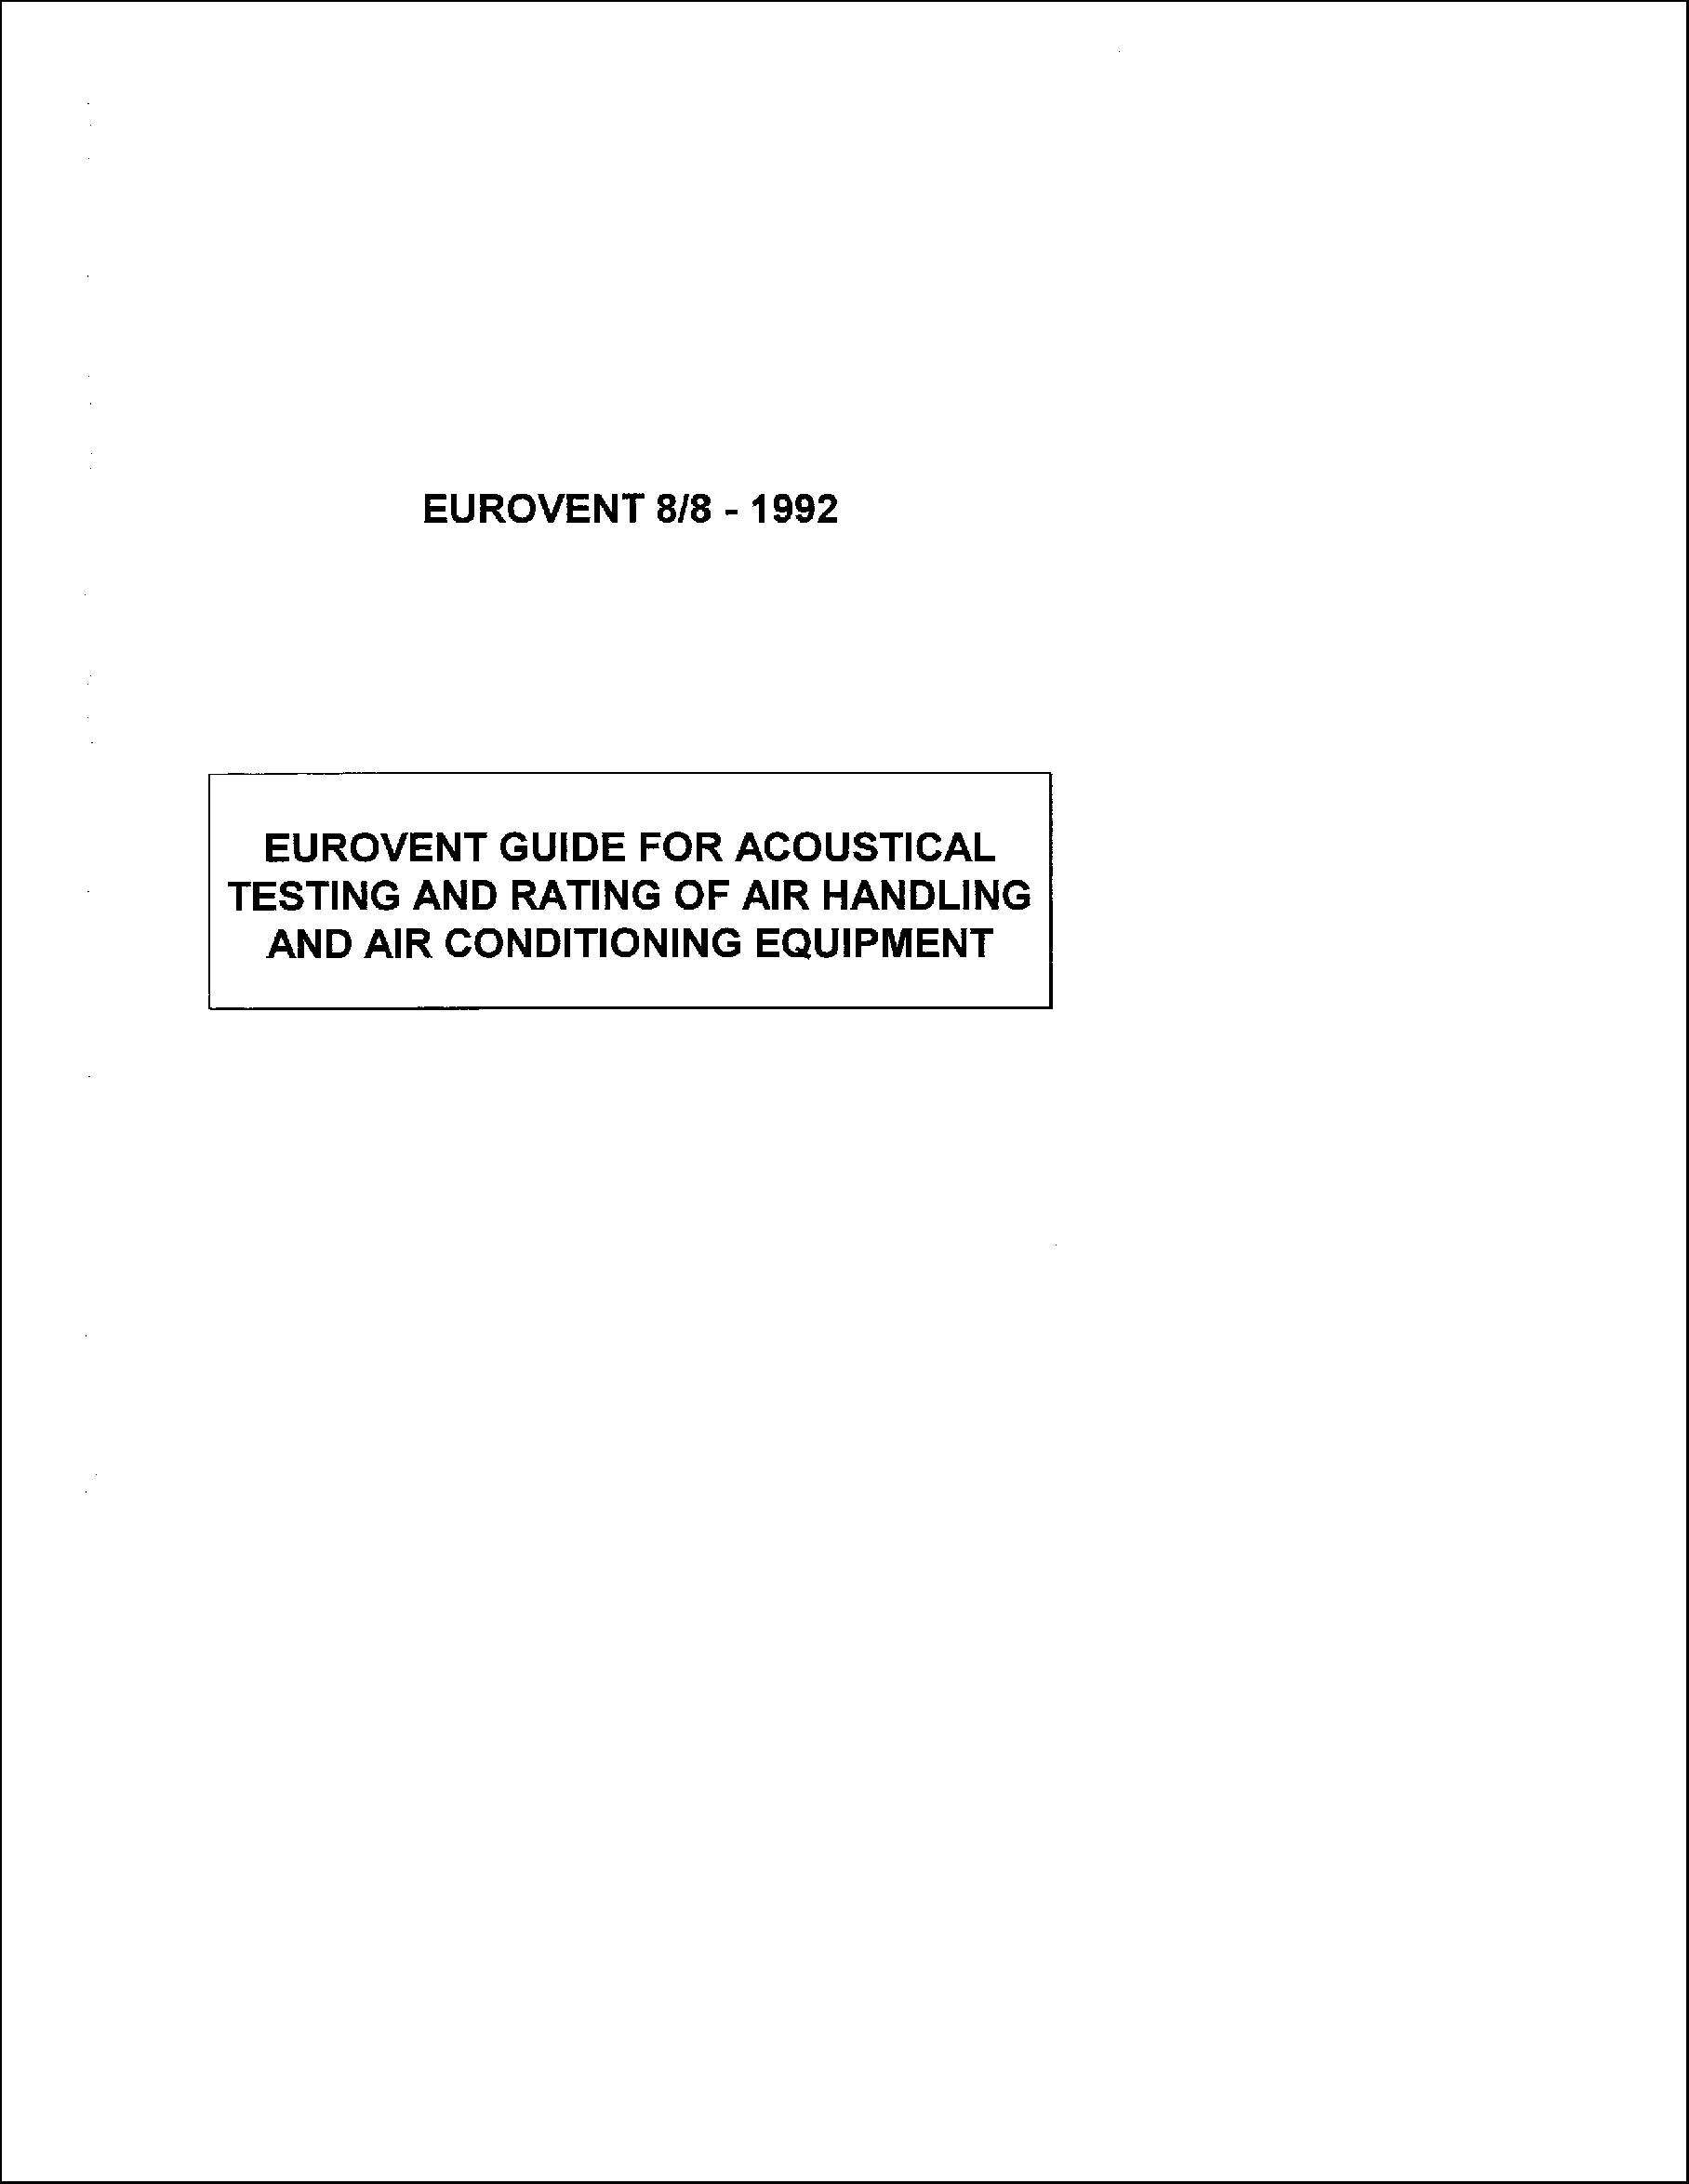 1992 - Guide for acoustical testing and rating of air handling and air conditioning equipment